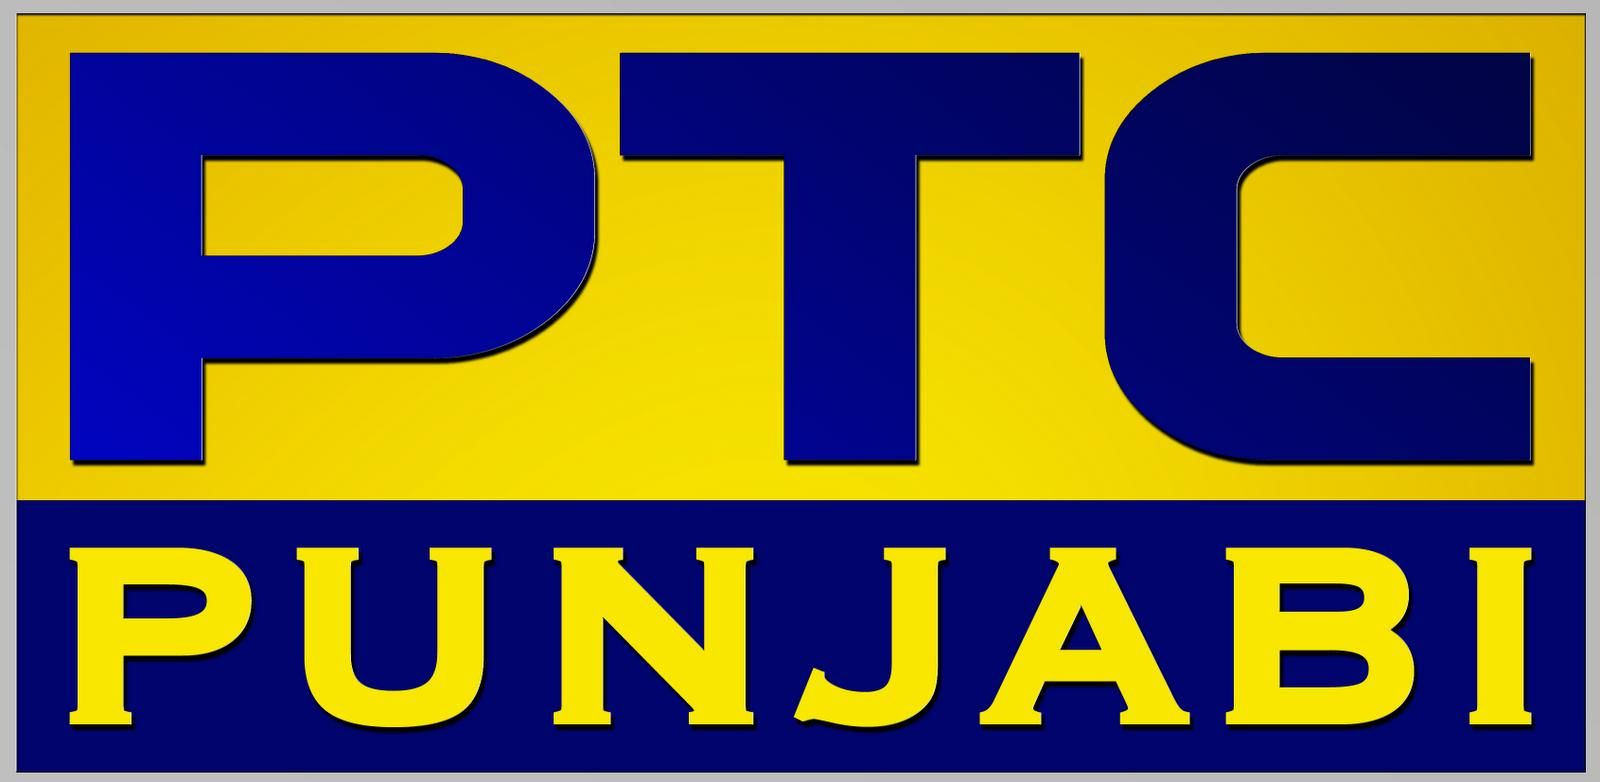 Pin by PTC Punjabi | World's No 1 Punjabi Channel on TV